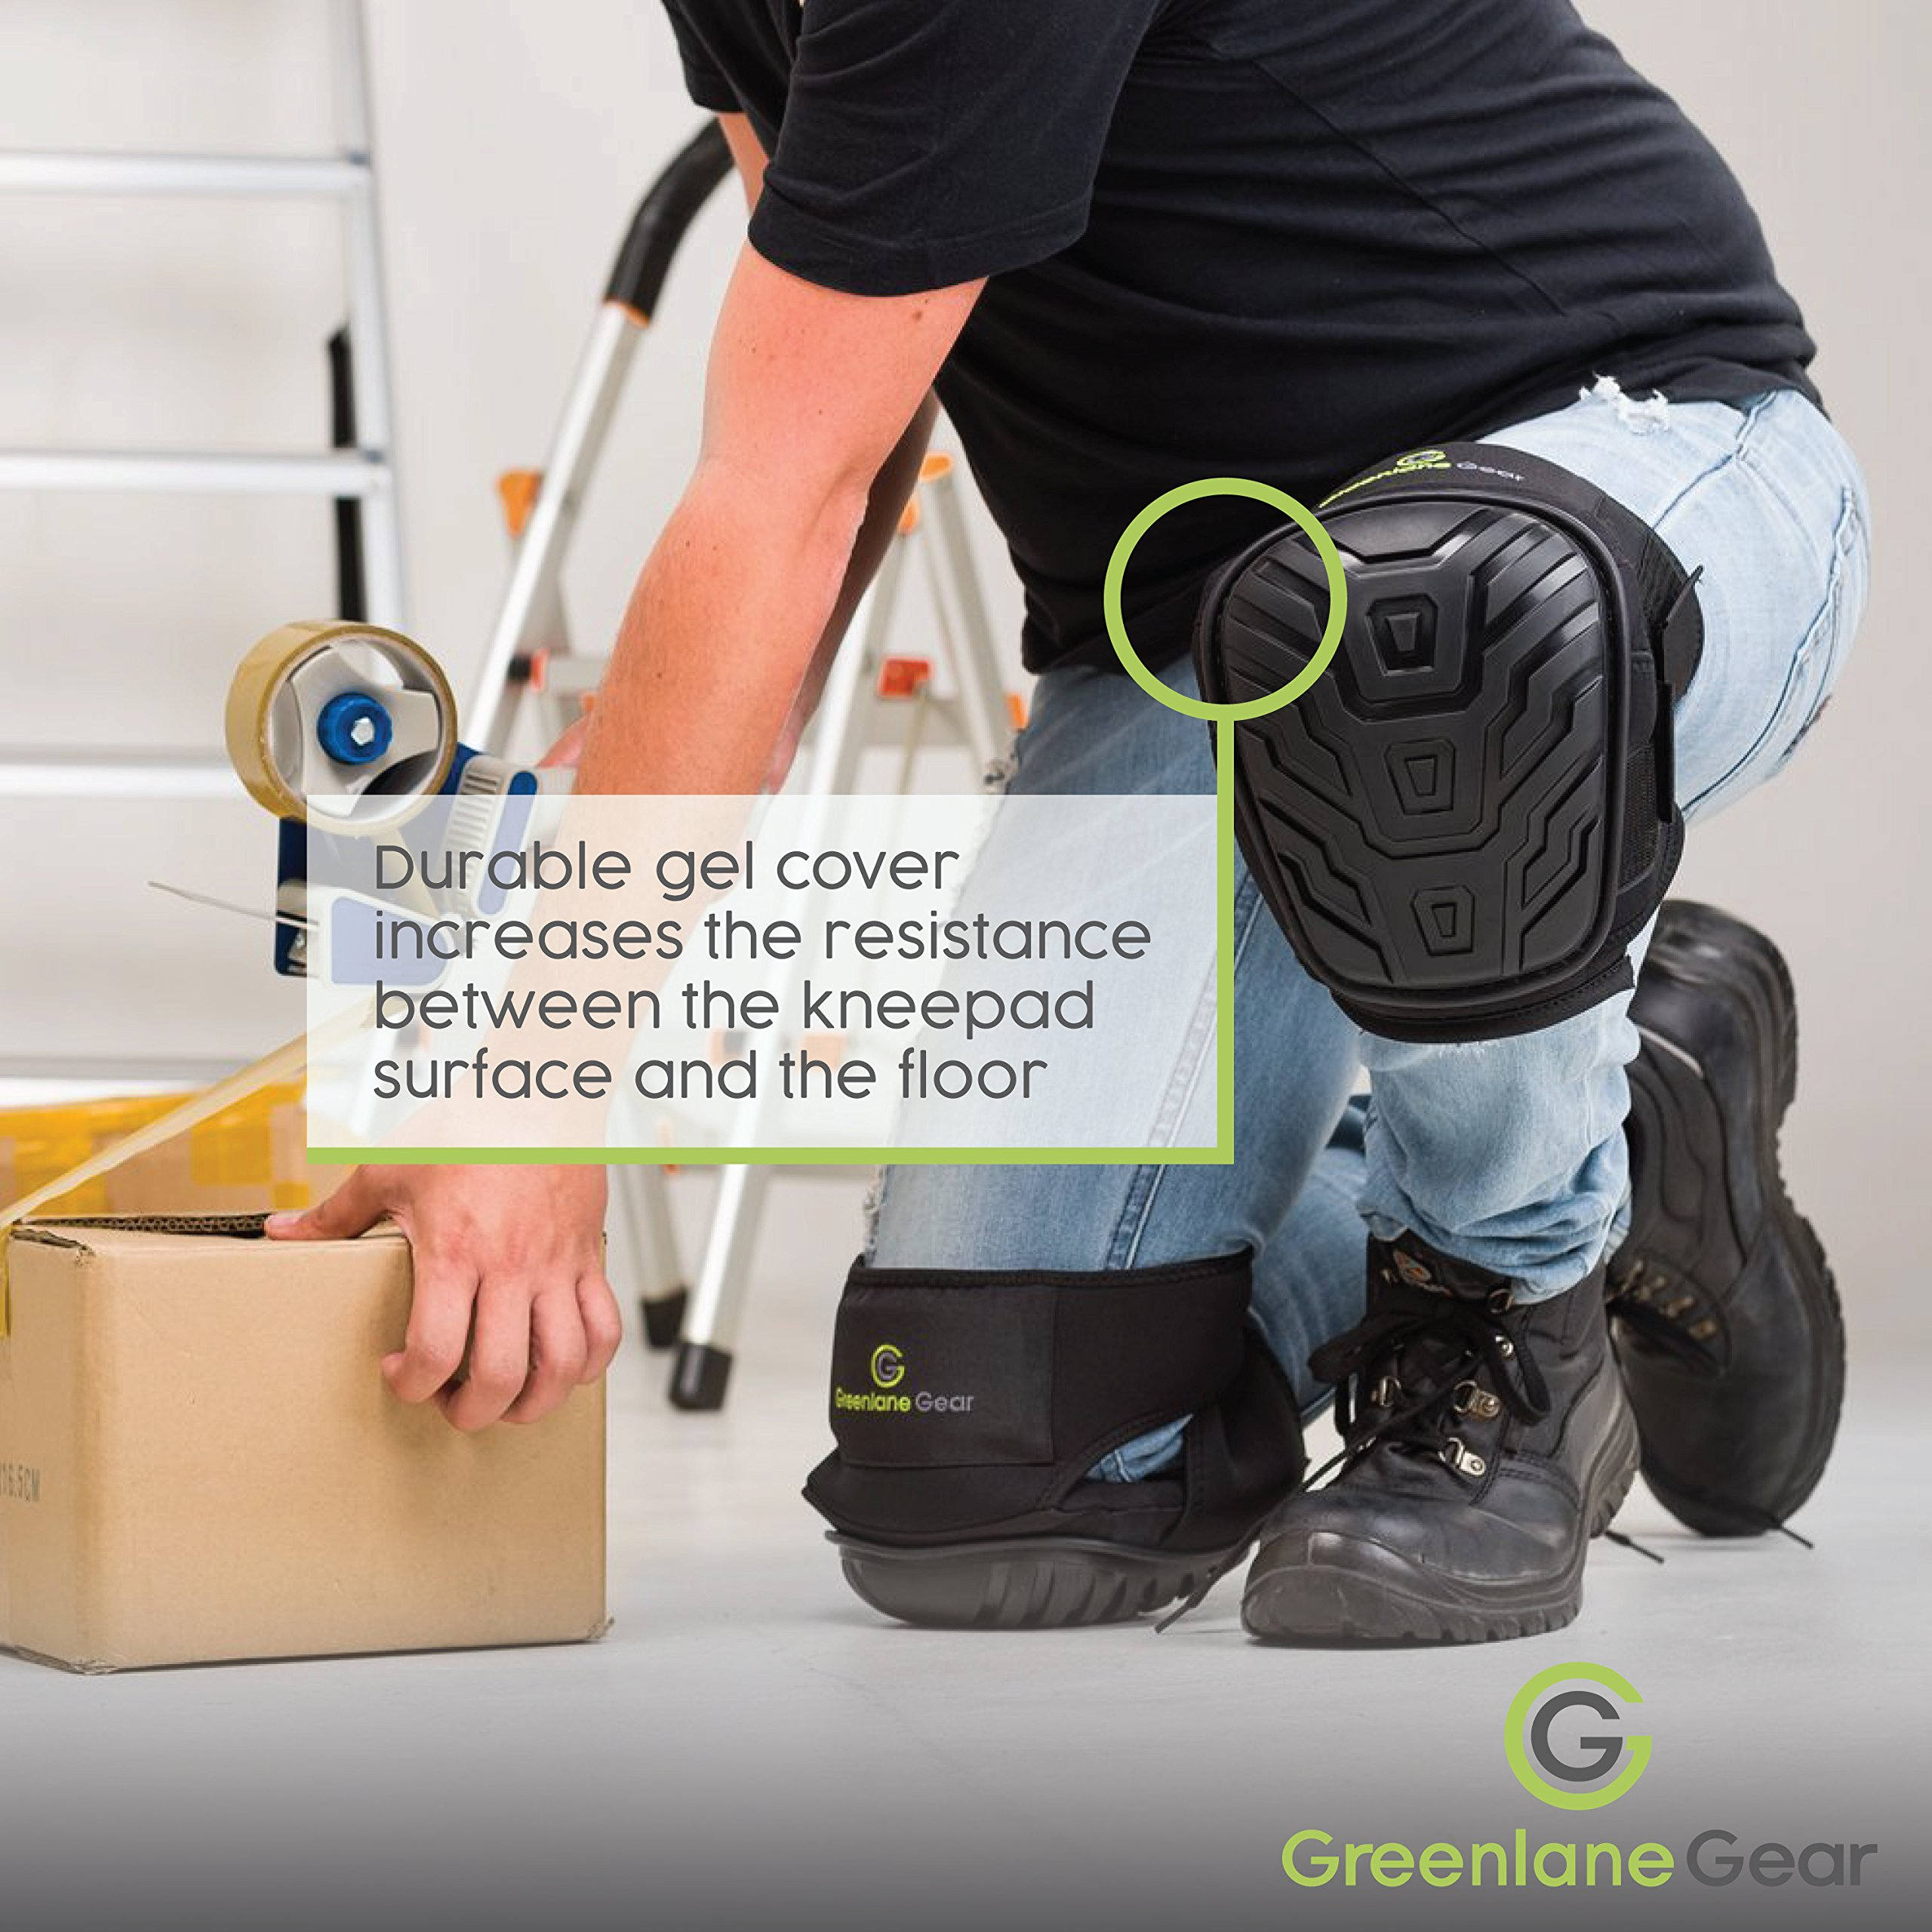 Gel Knee Pads for work designed to prevent slipping/sliding for gardening, construction, floor, tiling - Industrial grade heavy duty flexible kneepad- soft kneepads fits all (small-large) men/women by Greenlane Gear (Image #5)